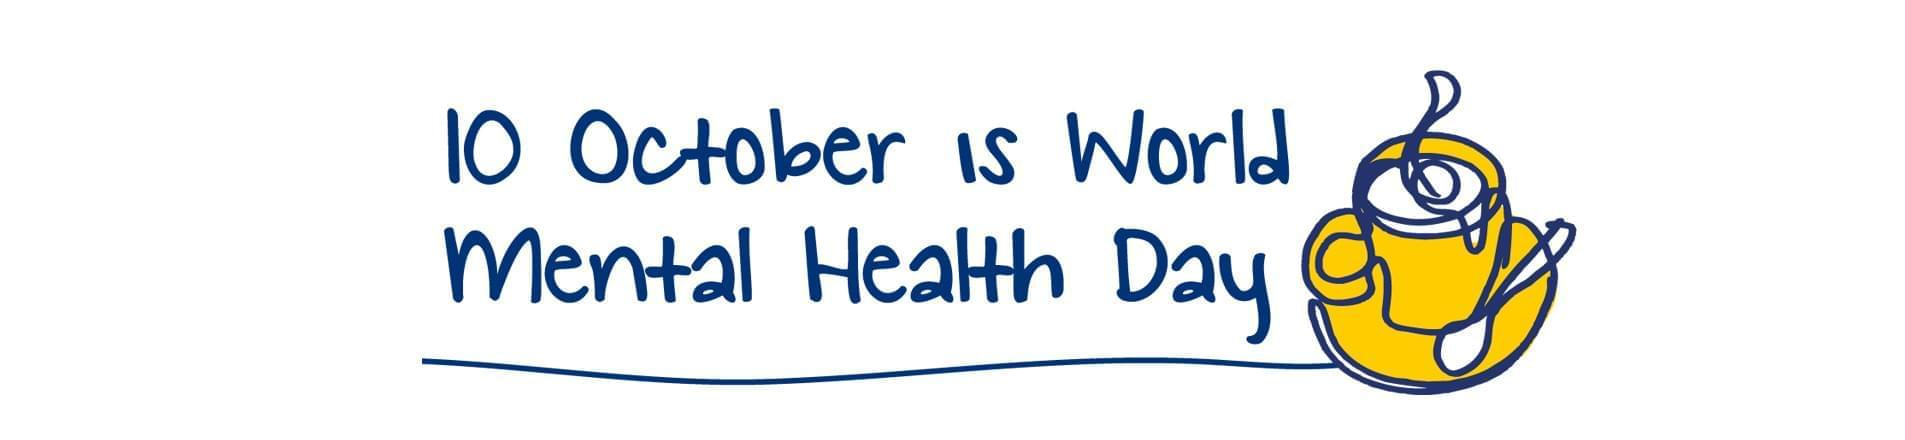 10th October is world mental health day